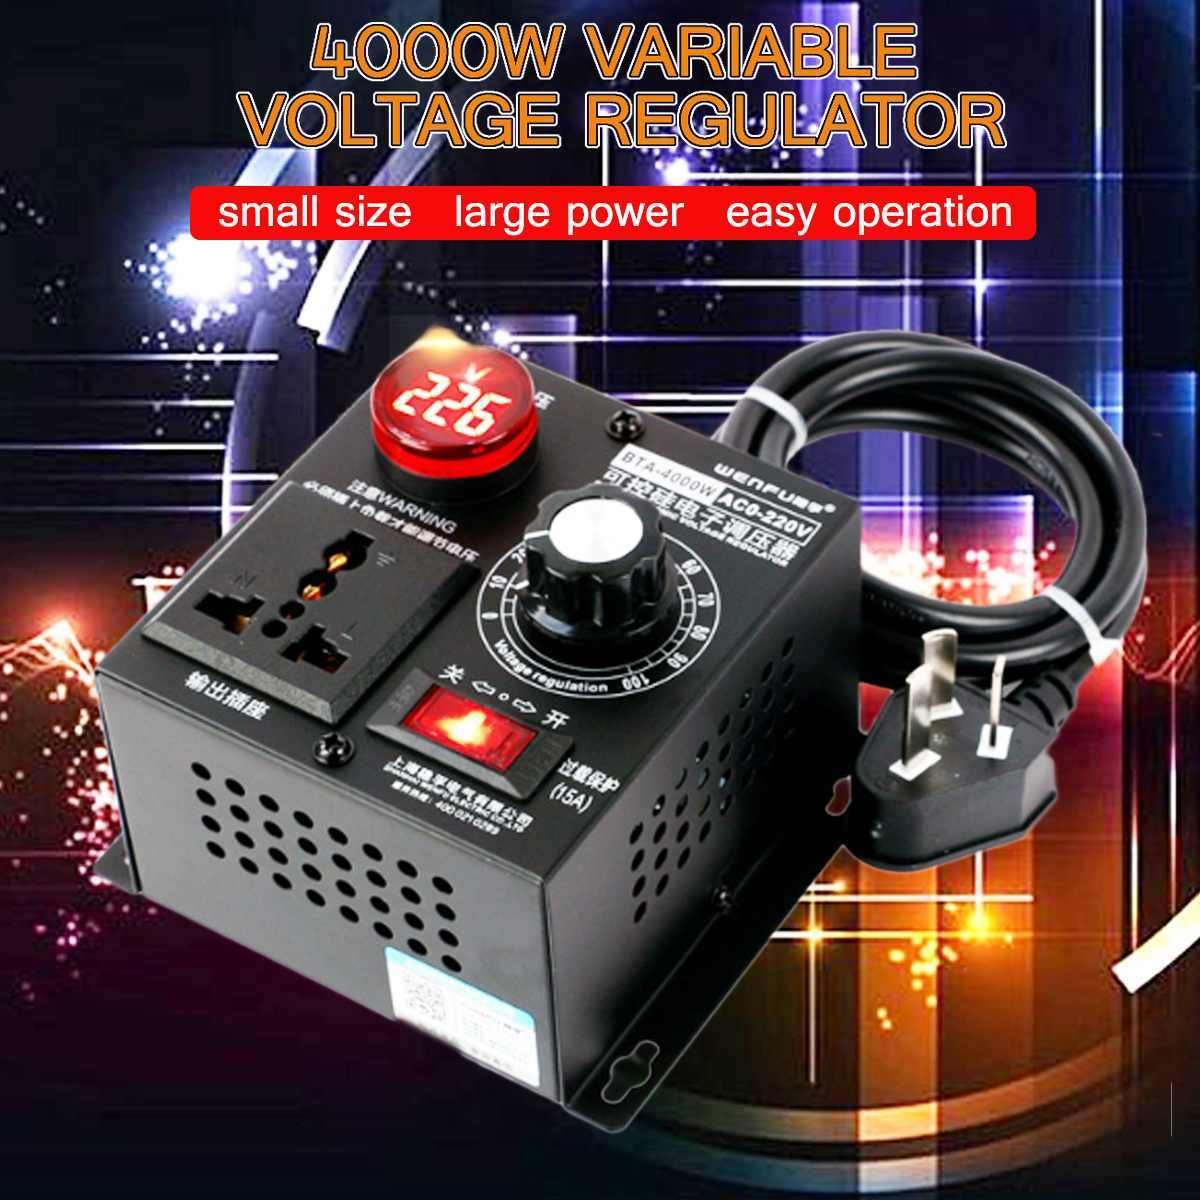 AC 220V 4000W SCR Electronic Voltage Regulator Motor Speed Fan Control Controller Dimmer Electric tool Adjustable